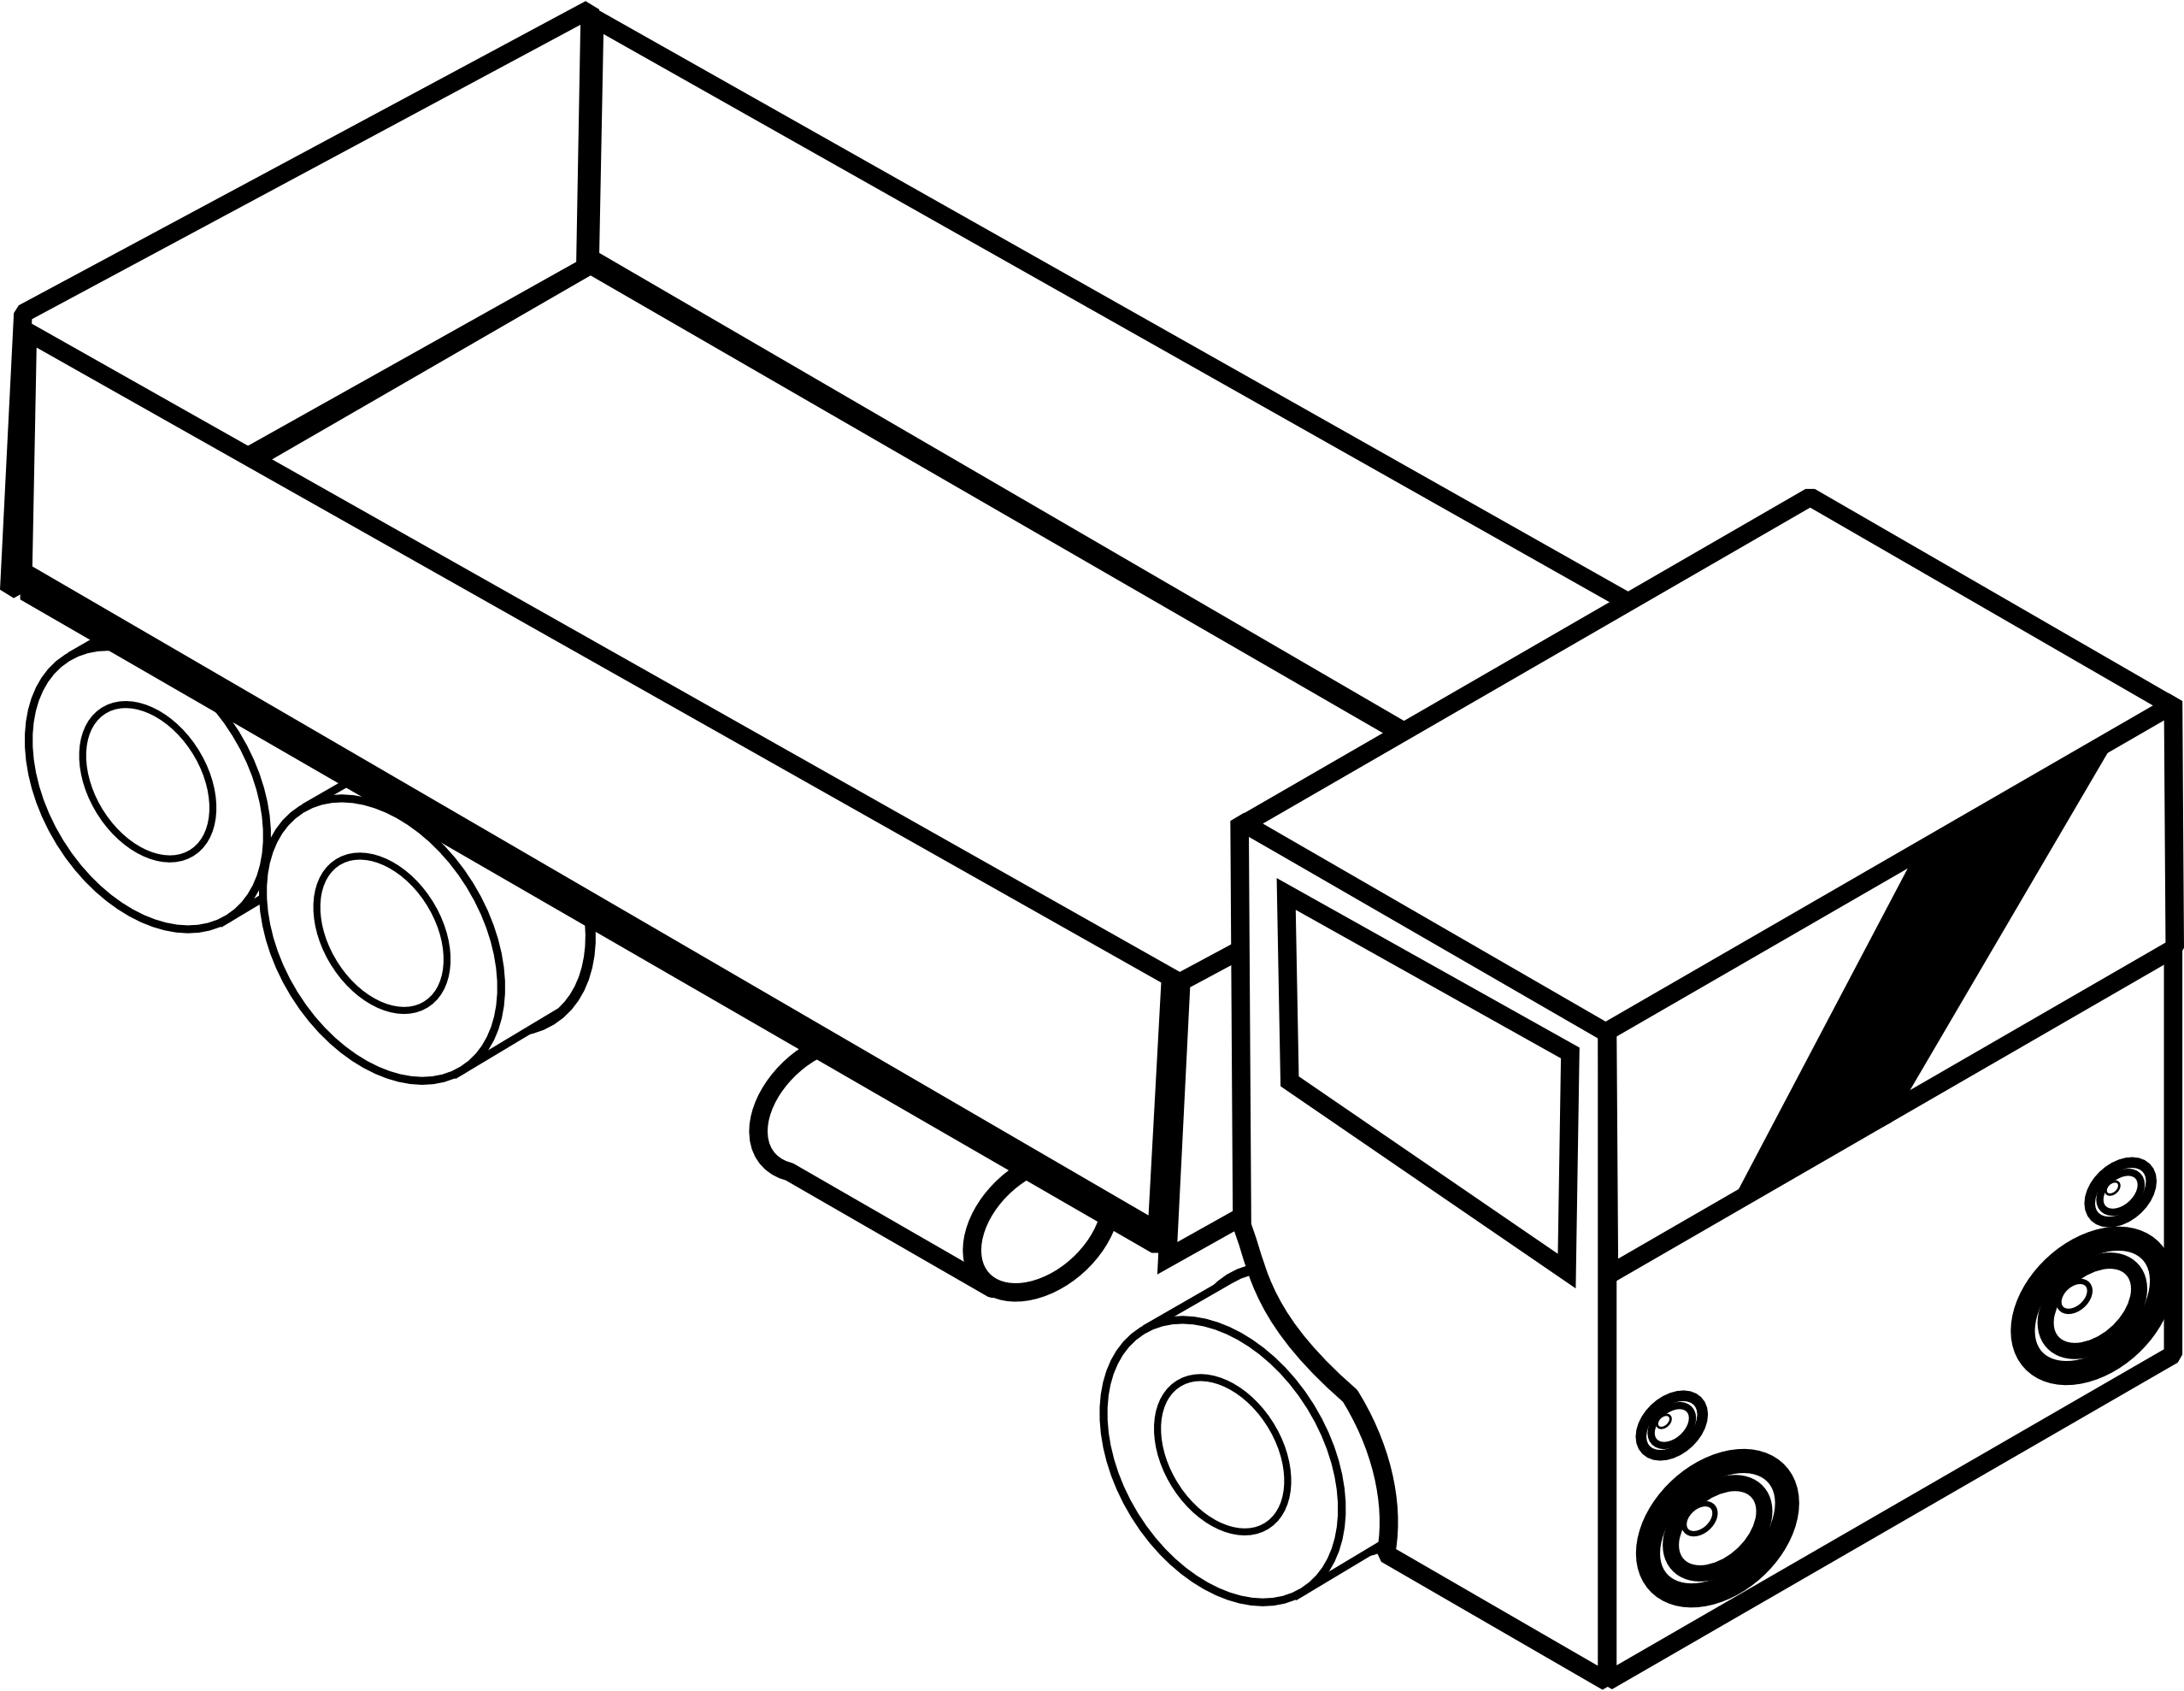 coloring truck clipart black and white picture of moving truck clipartsco black truck clipart white and coloring